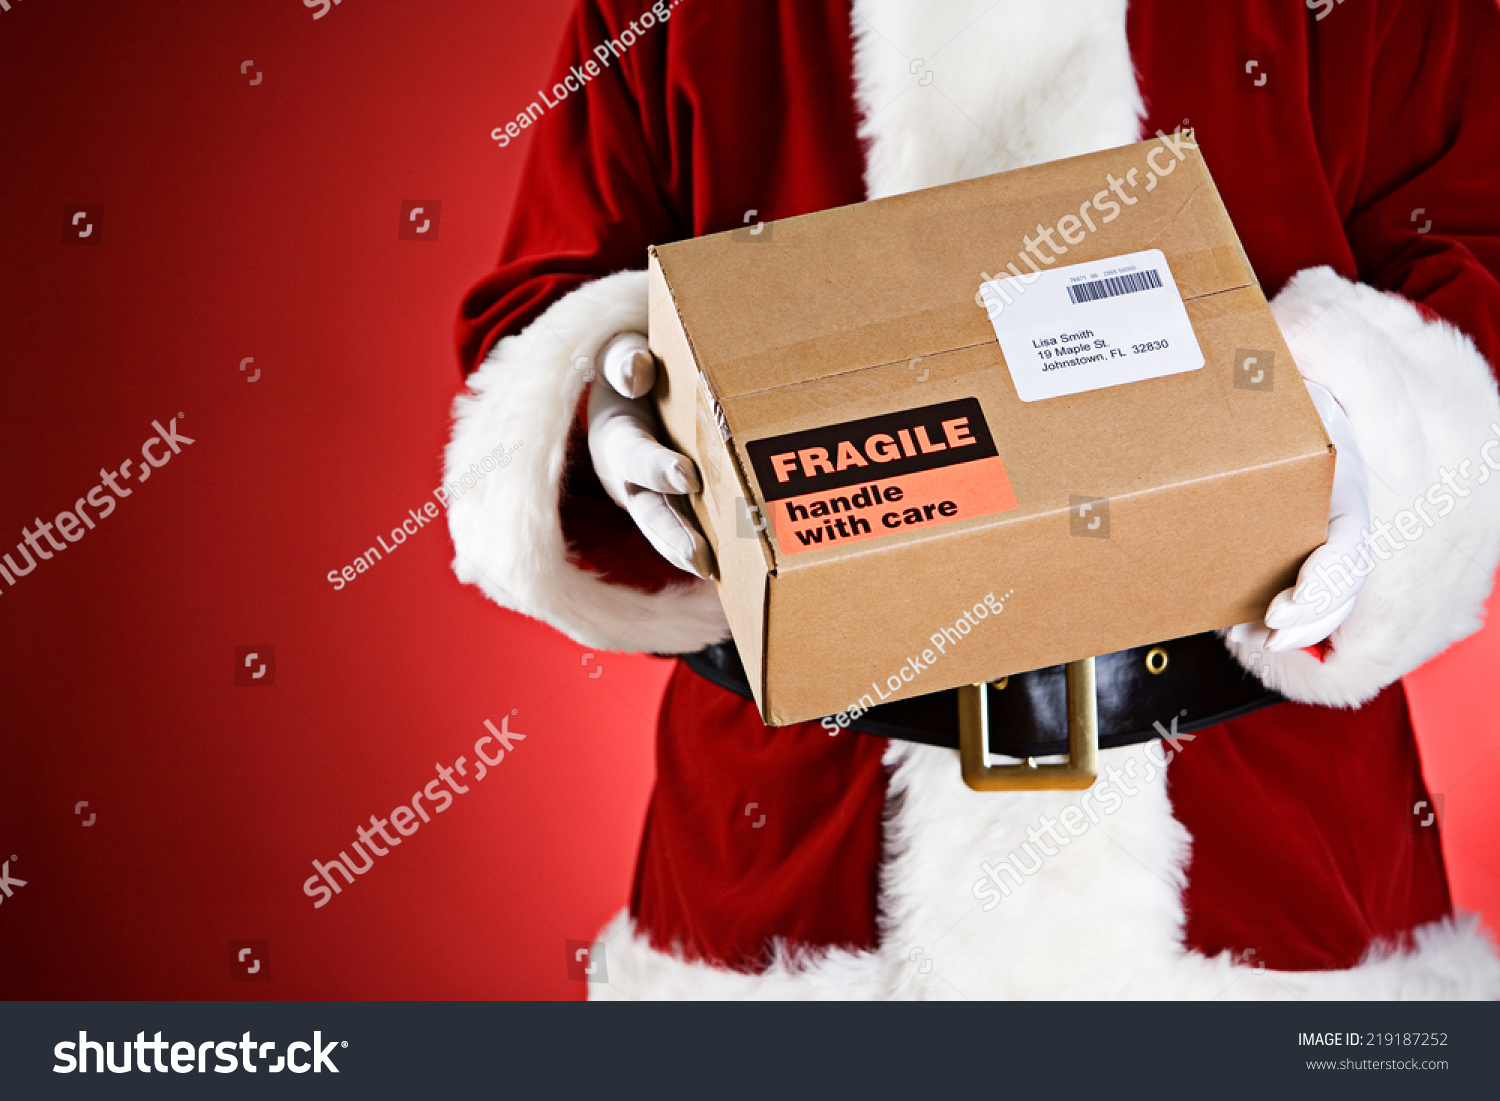 Santa holds shipping box fake address stock photo for Create fake shipping label